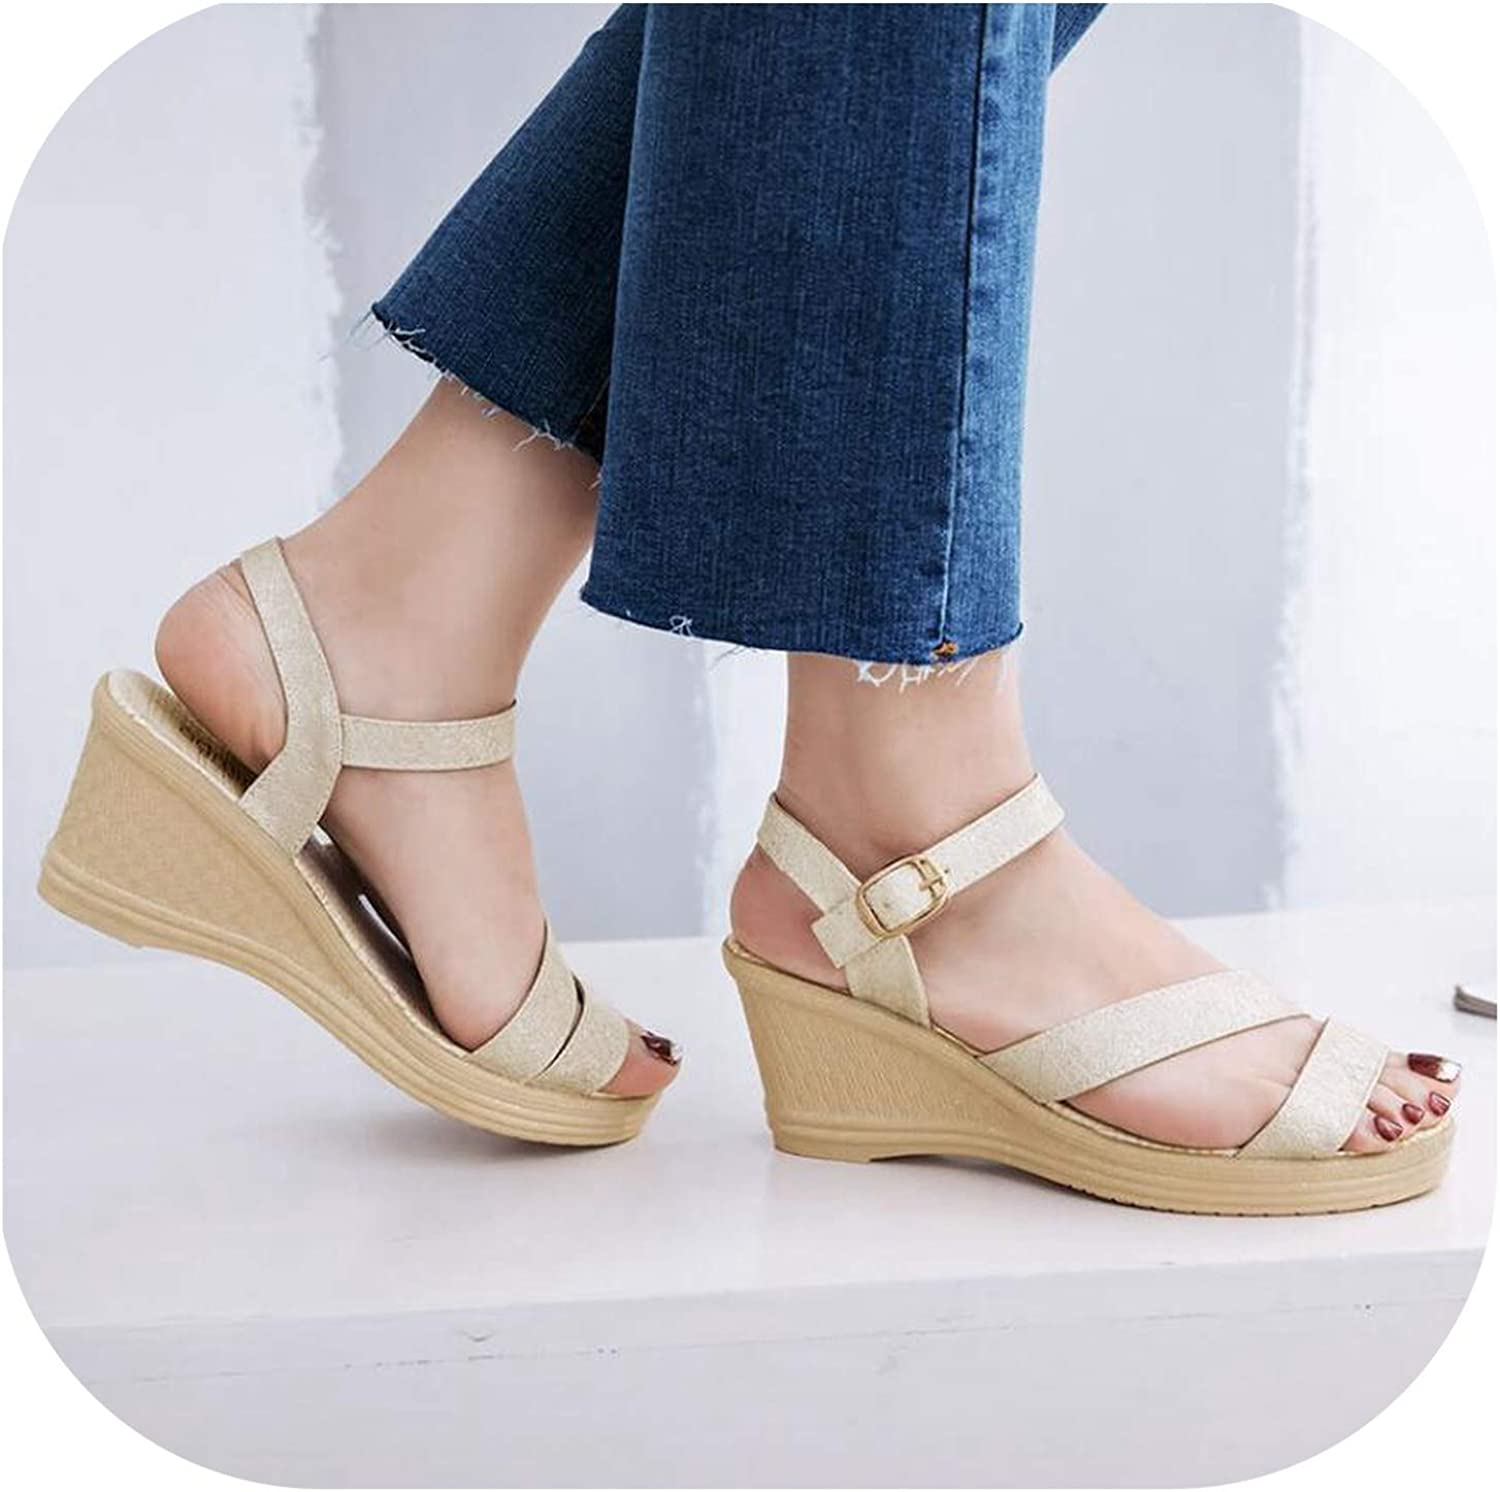 Meiguiyuan Summer Slope Sandals Female Platform Wedge Fashion Sandals with Toe White gold bluee color Sandals